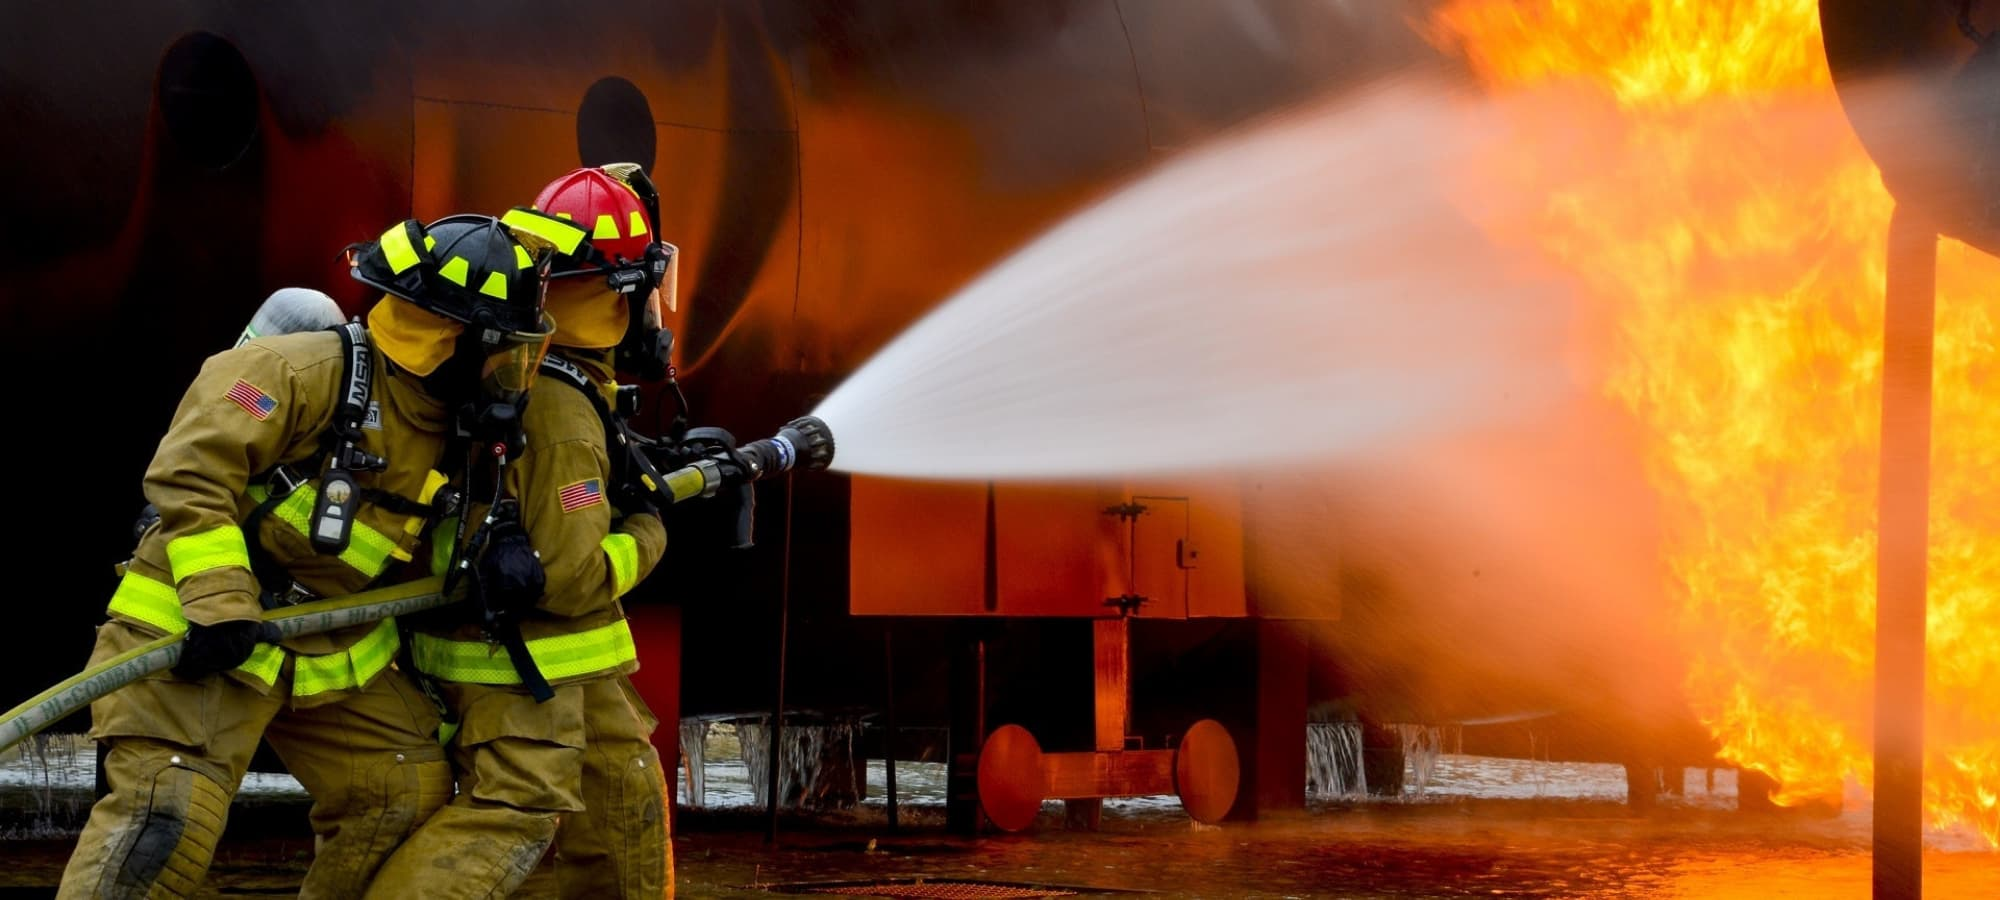 Two firefighters using a fire hose to put our a large fire.